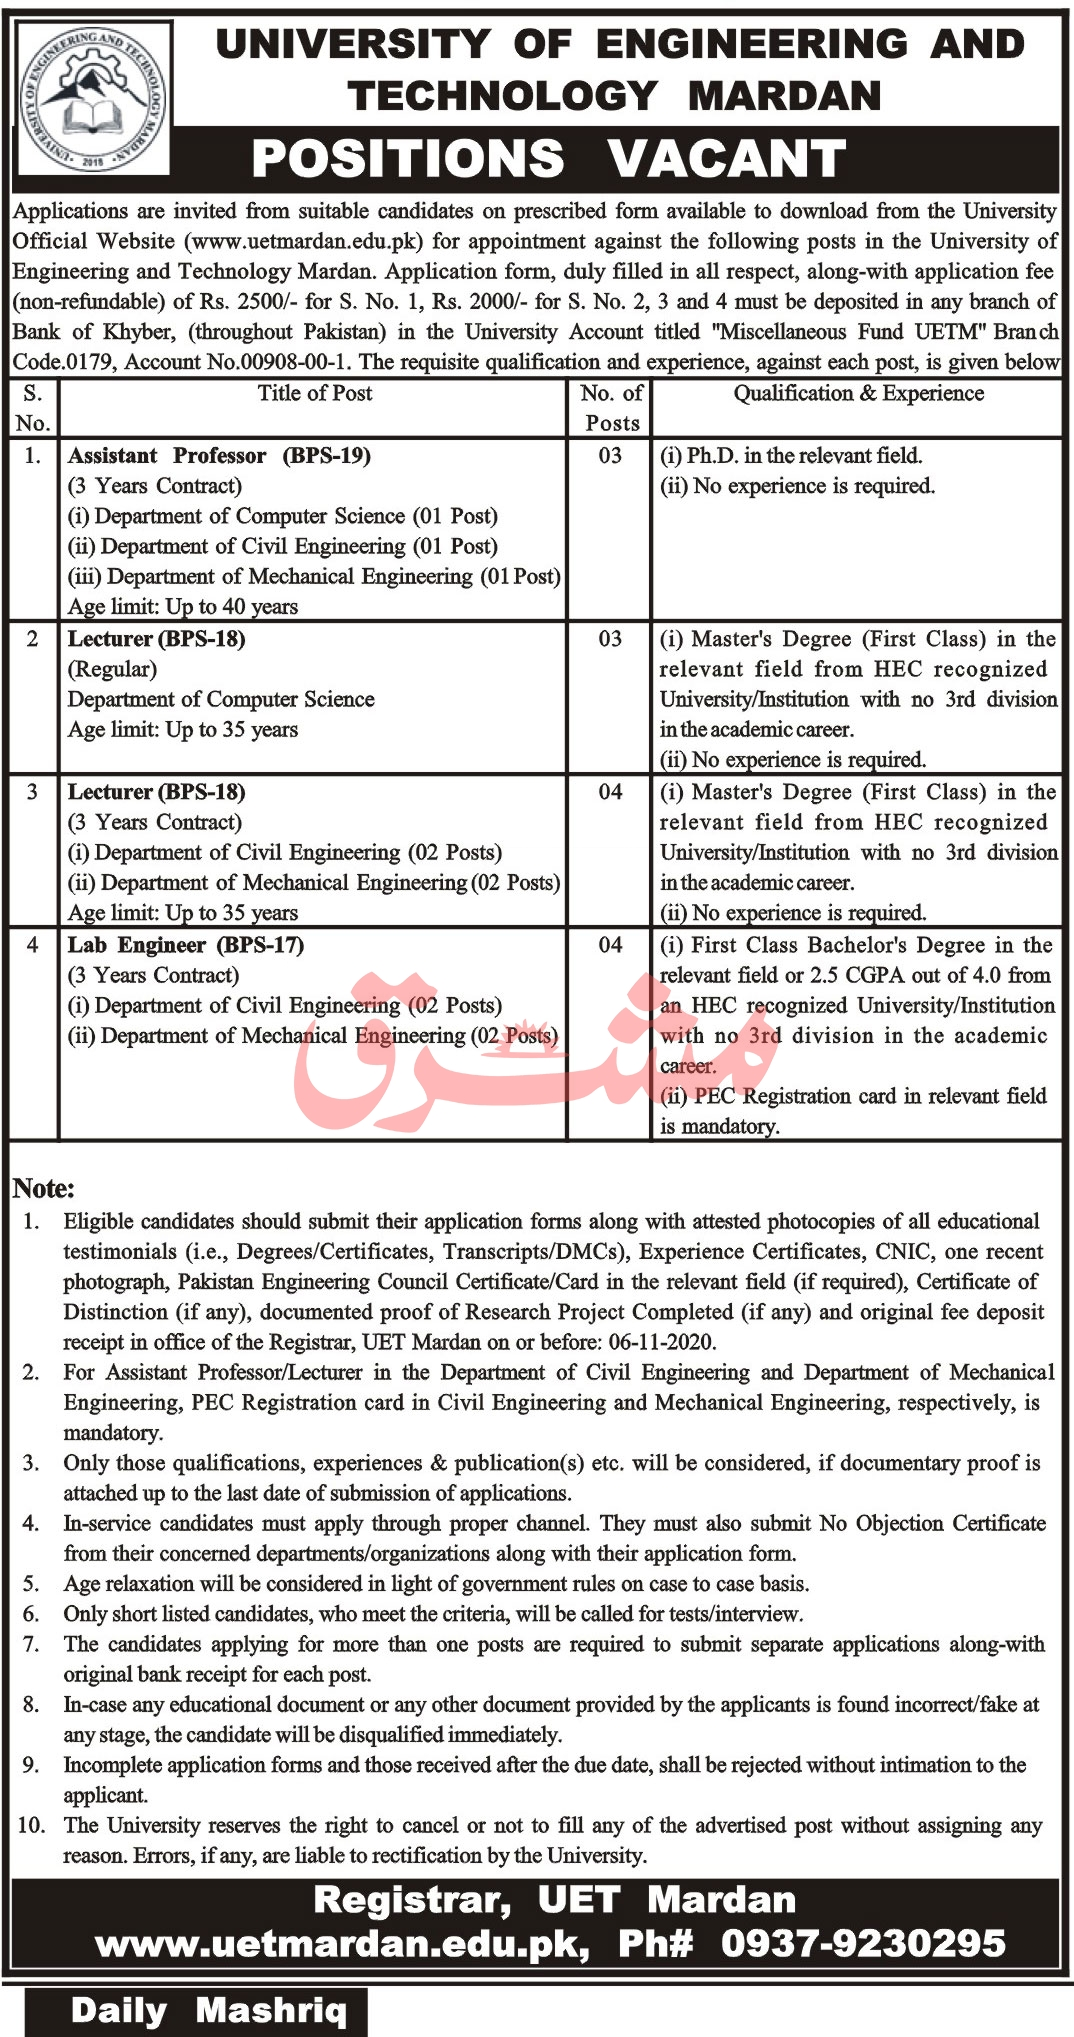 University of Engineering and Technology Mardan Jobs October 2020